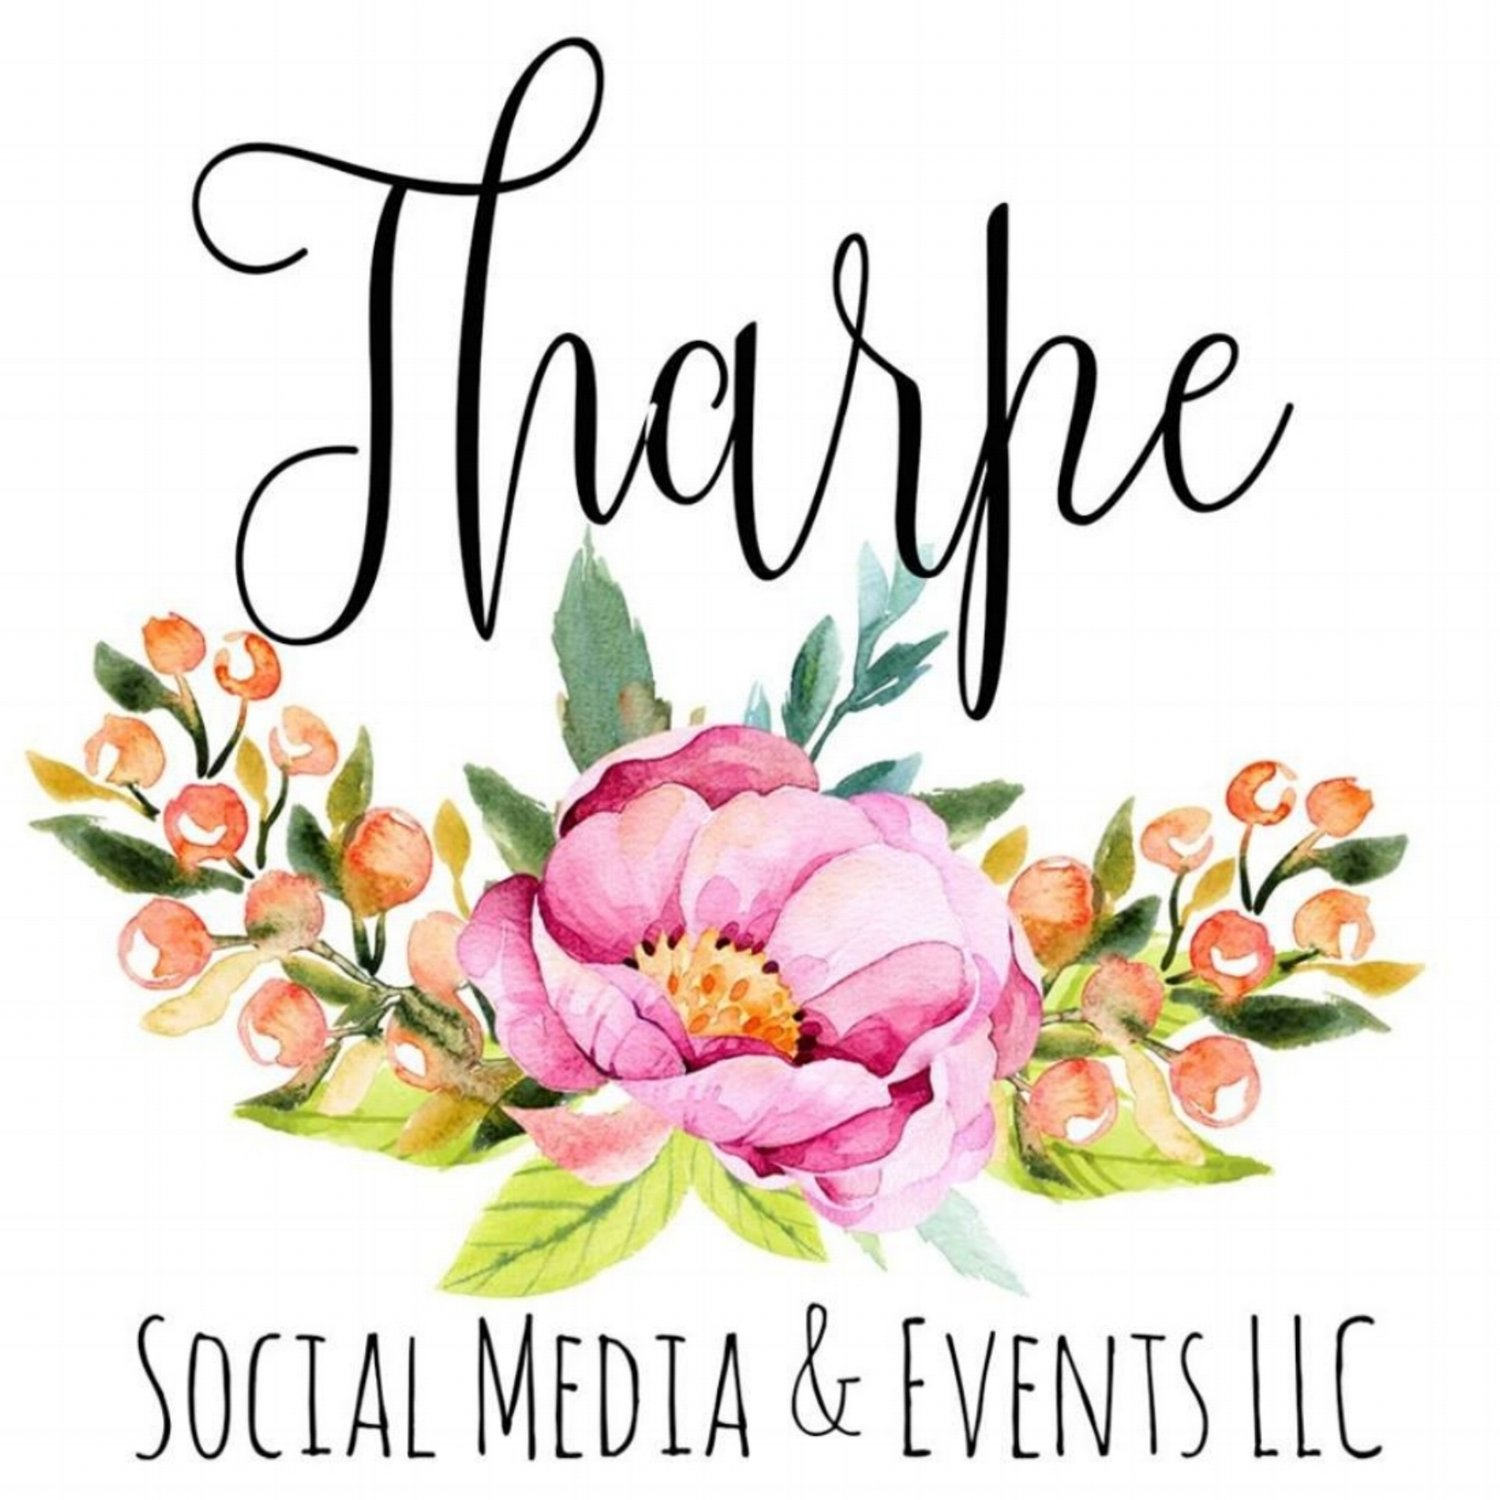 Tharpe Social Media & Events